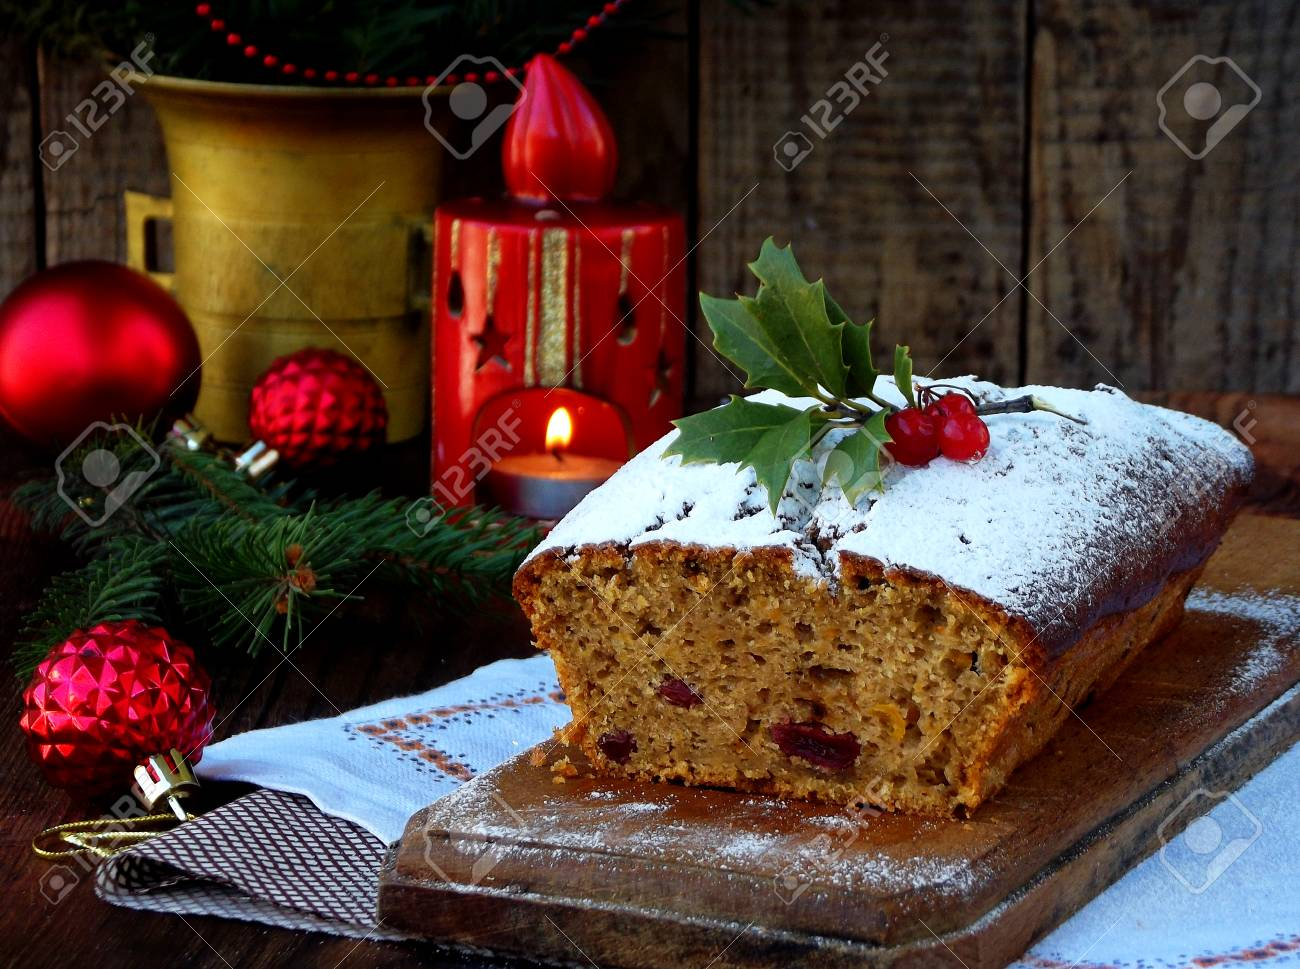 Christmas Cake Decorations.Traditional Christmas Fruit Cake Decorated With Powdered Sugar